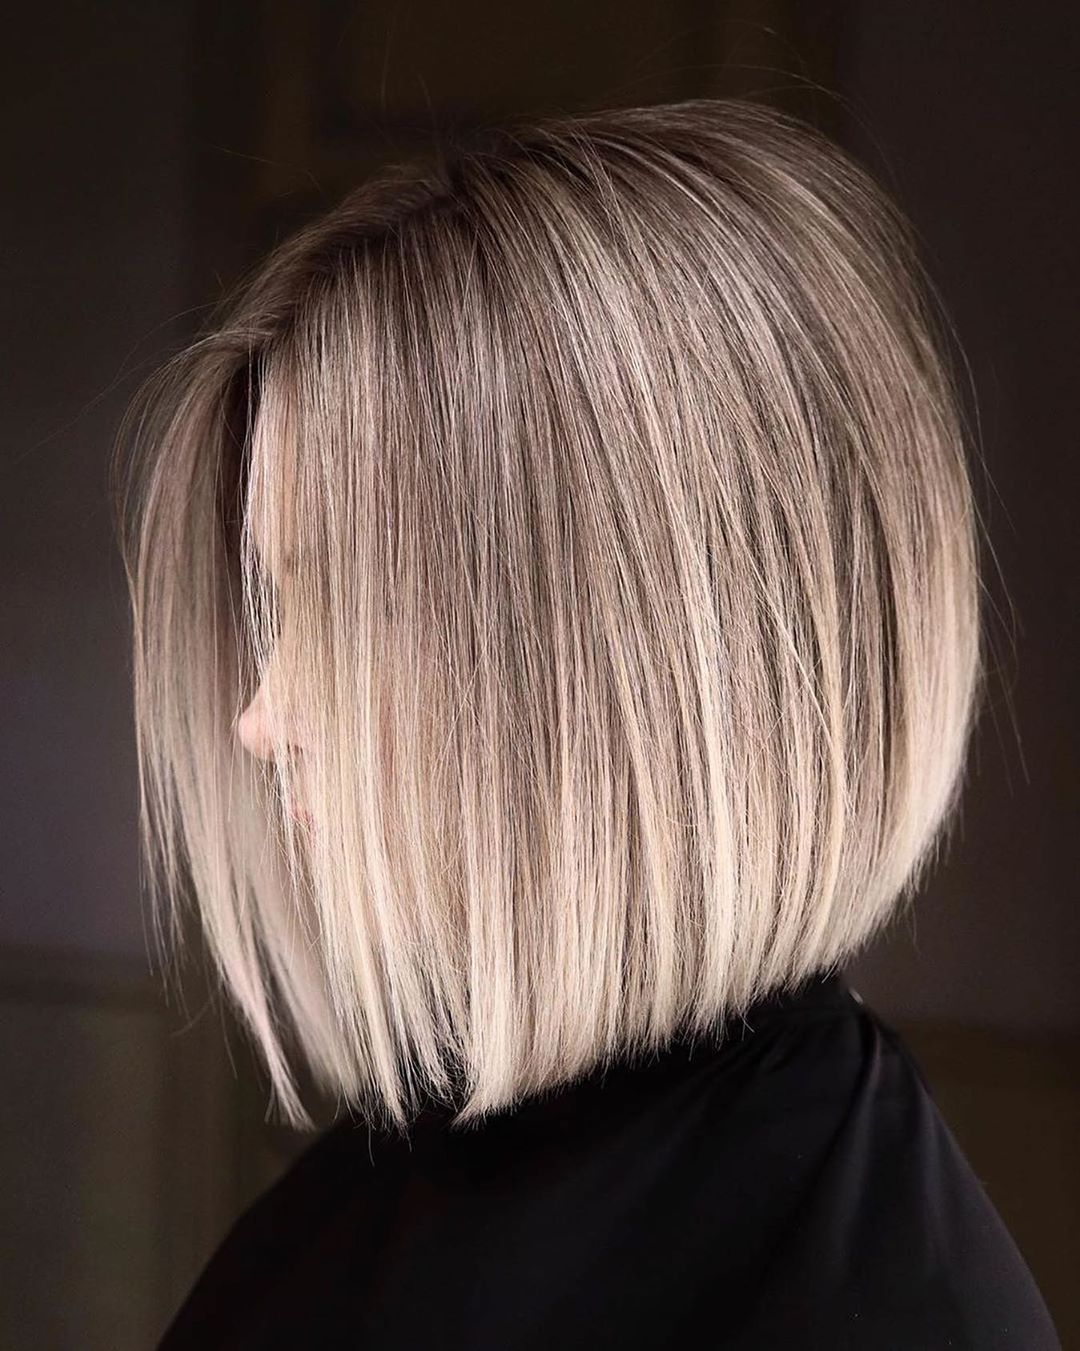 30 Beautiful Short Hairstyles for December 2020